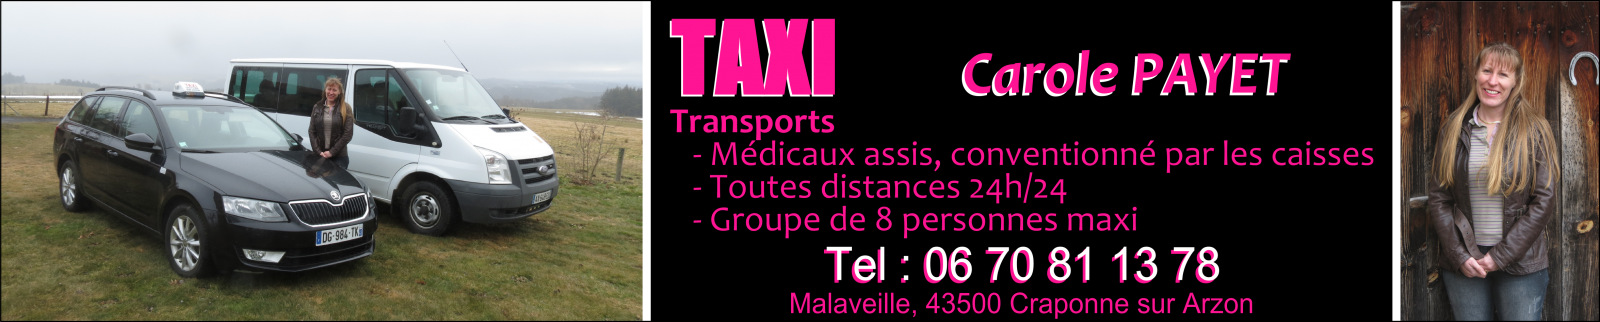 Taxi Carole Payet